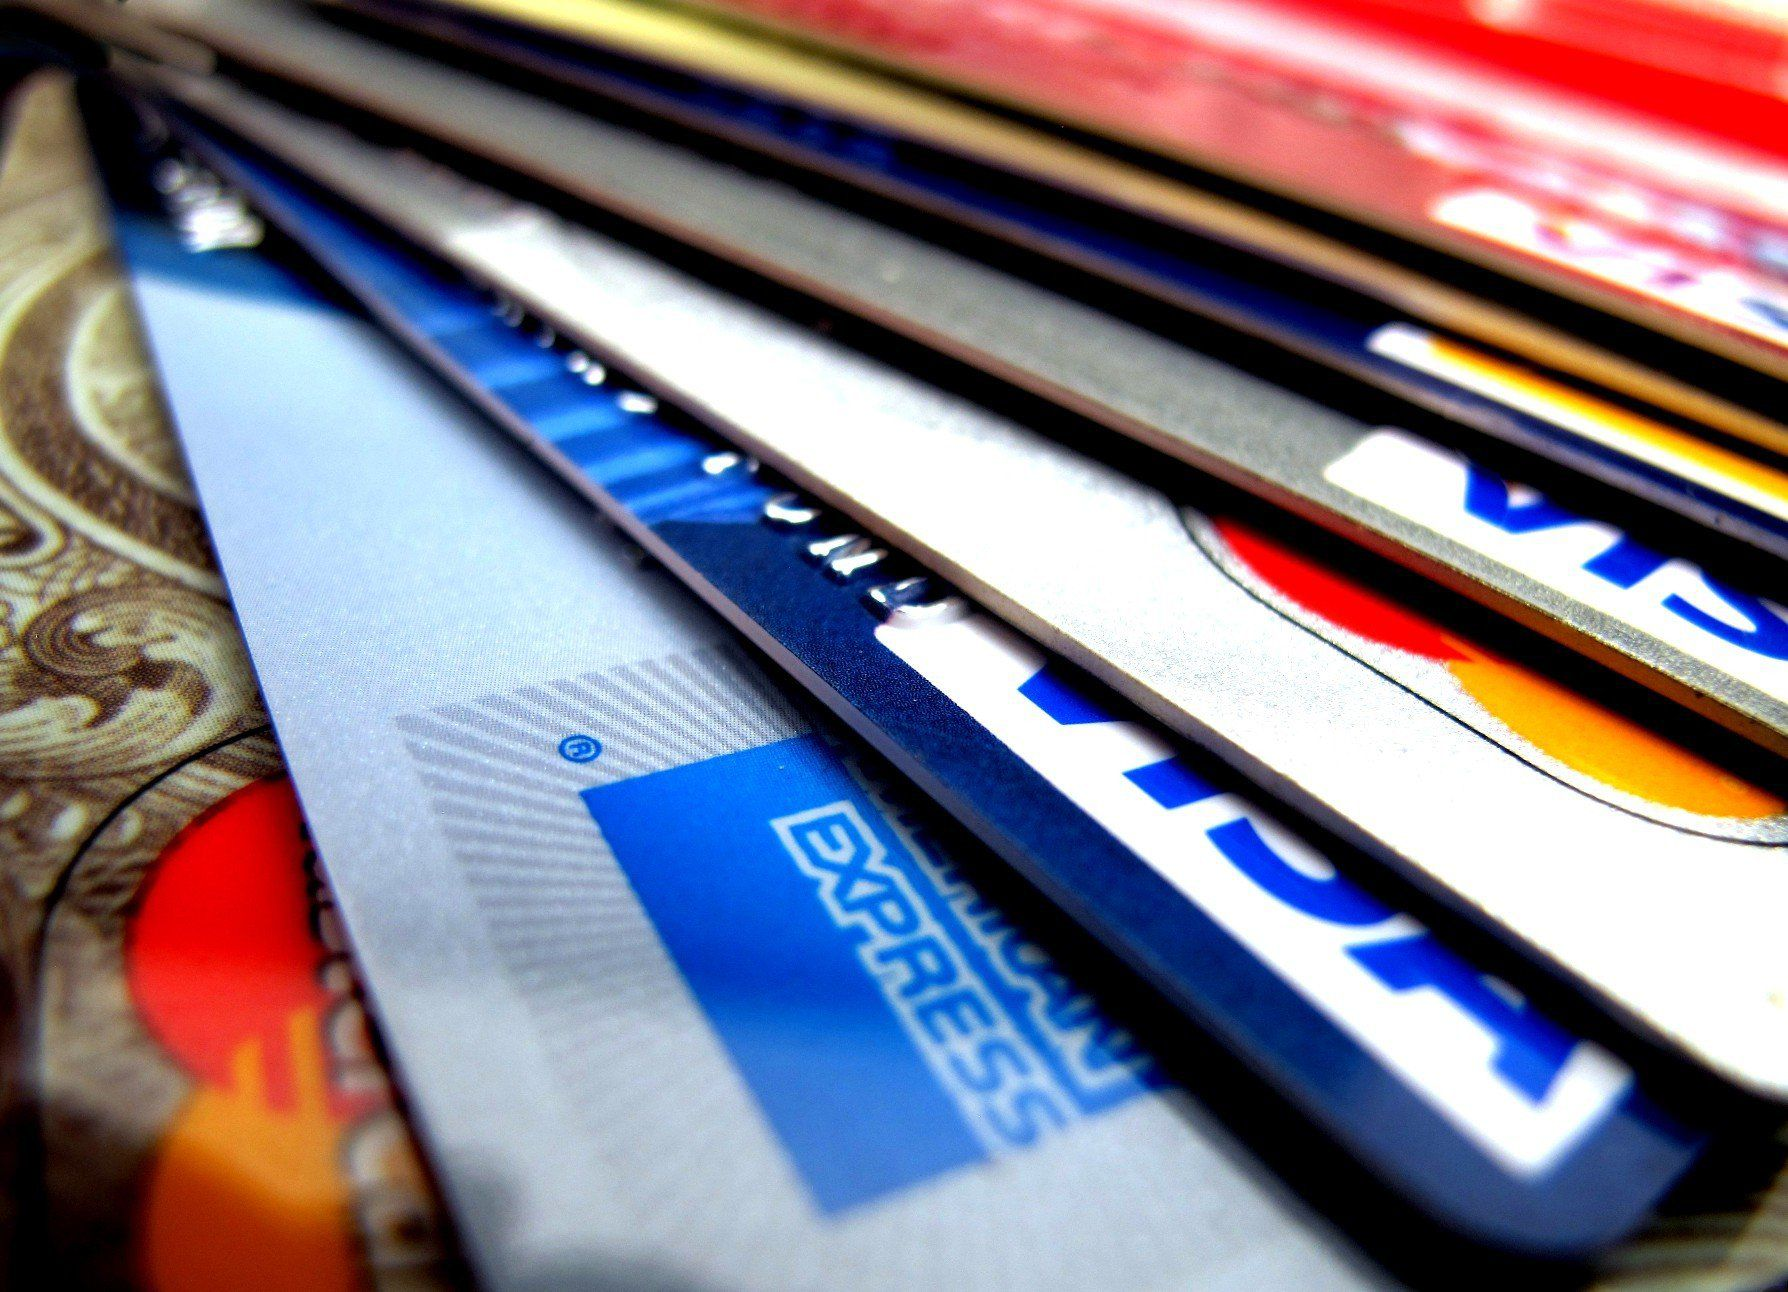 Why Don T More Banks Offer Virtual Card Numbers If They Re Safer Money Matters Cleveland Com